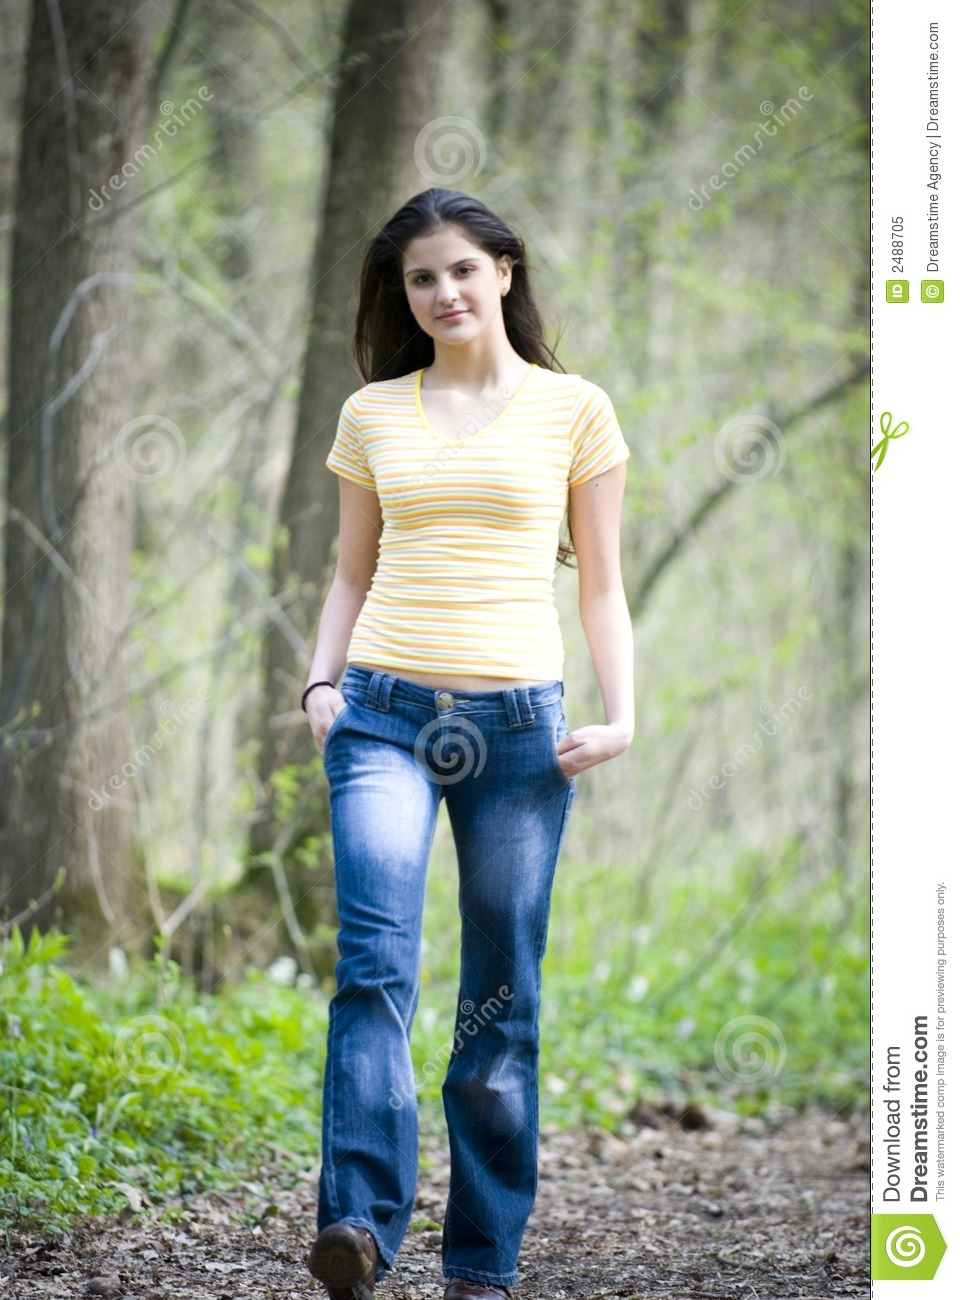 Casual Woman Walking In Forest Stock Image - Image of ...